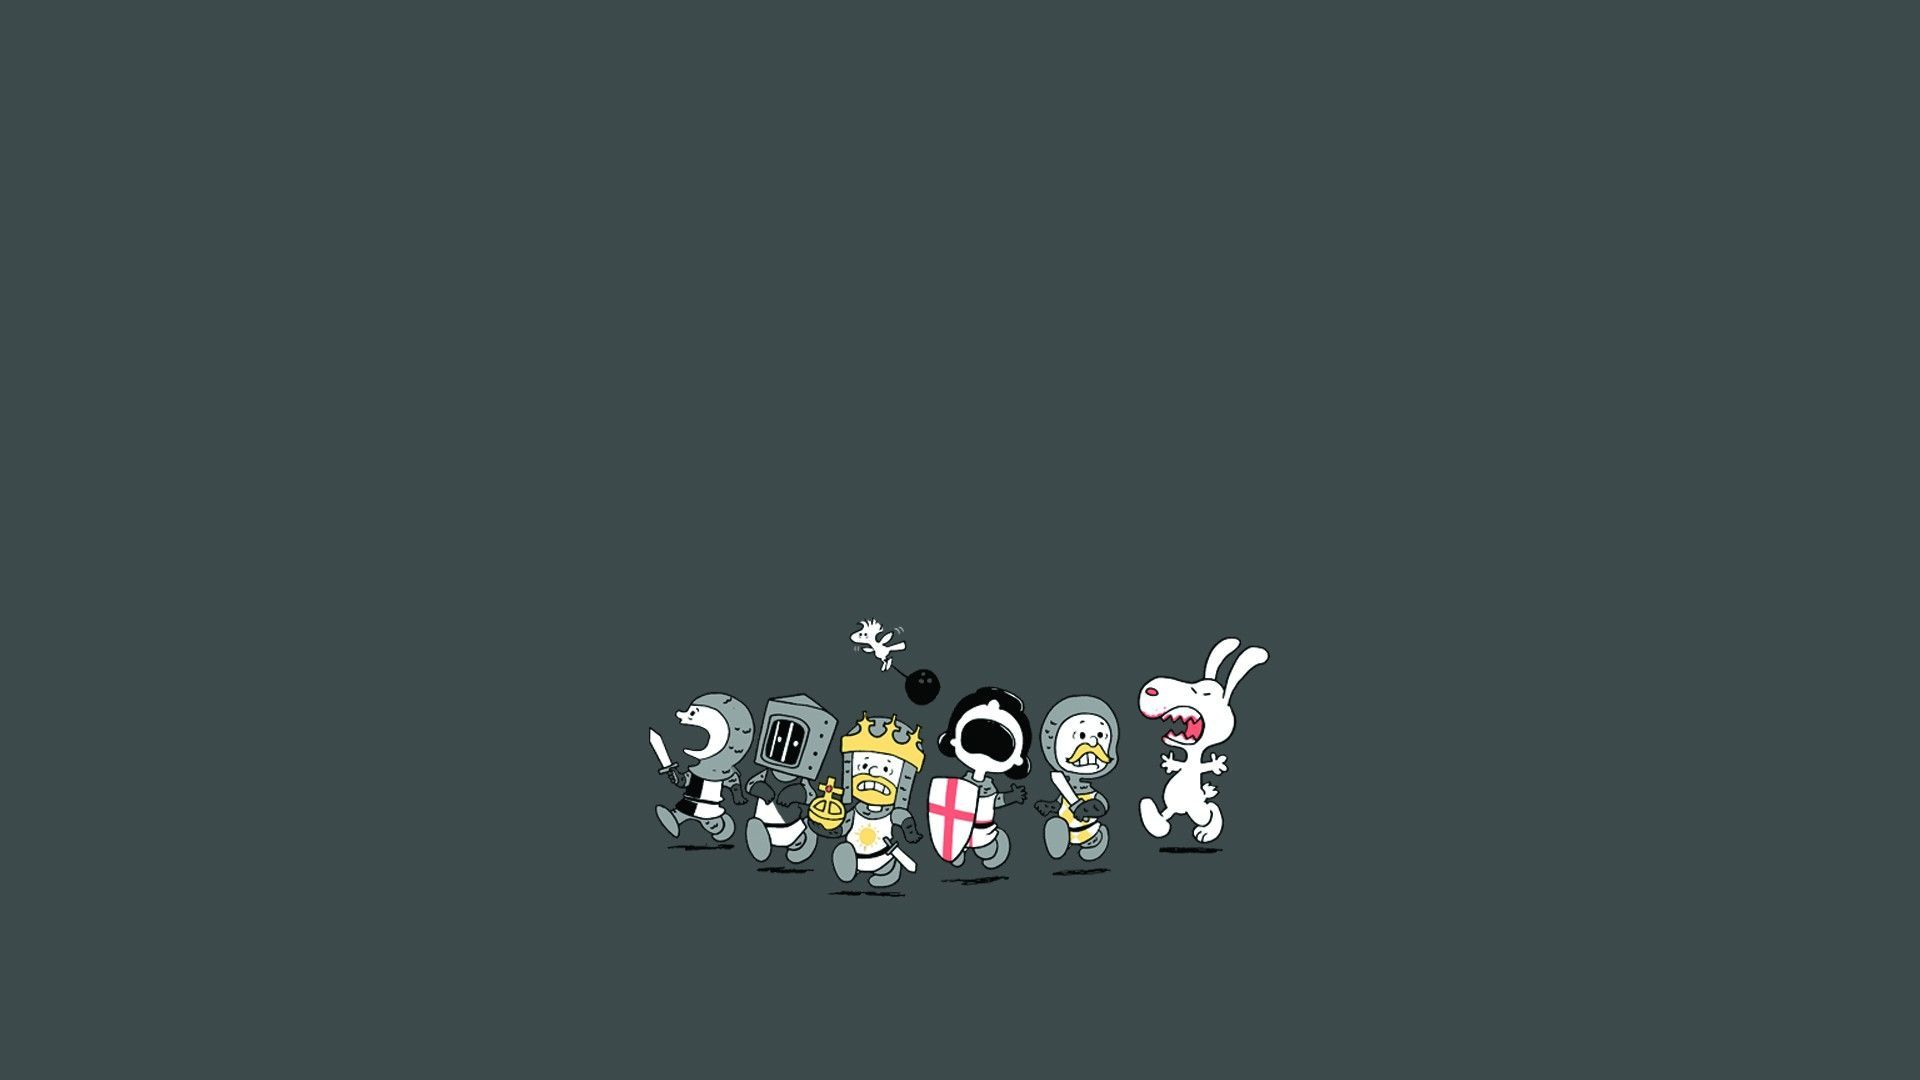 Monty Python And The Holy Grail Images Its Charlie Brown HD Wallpaper Background Photos